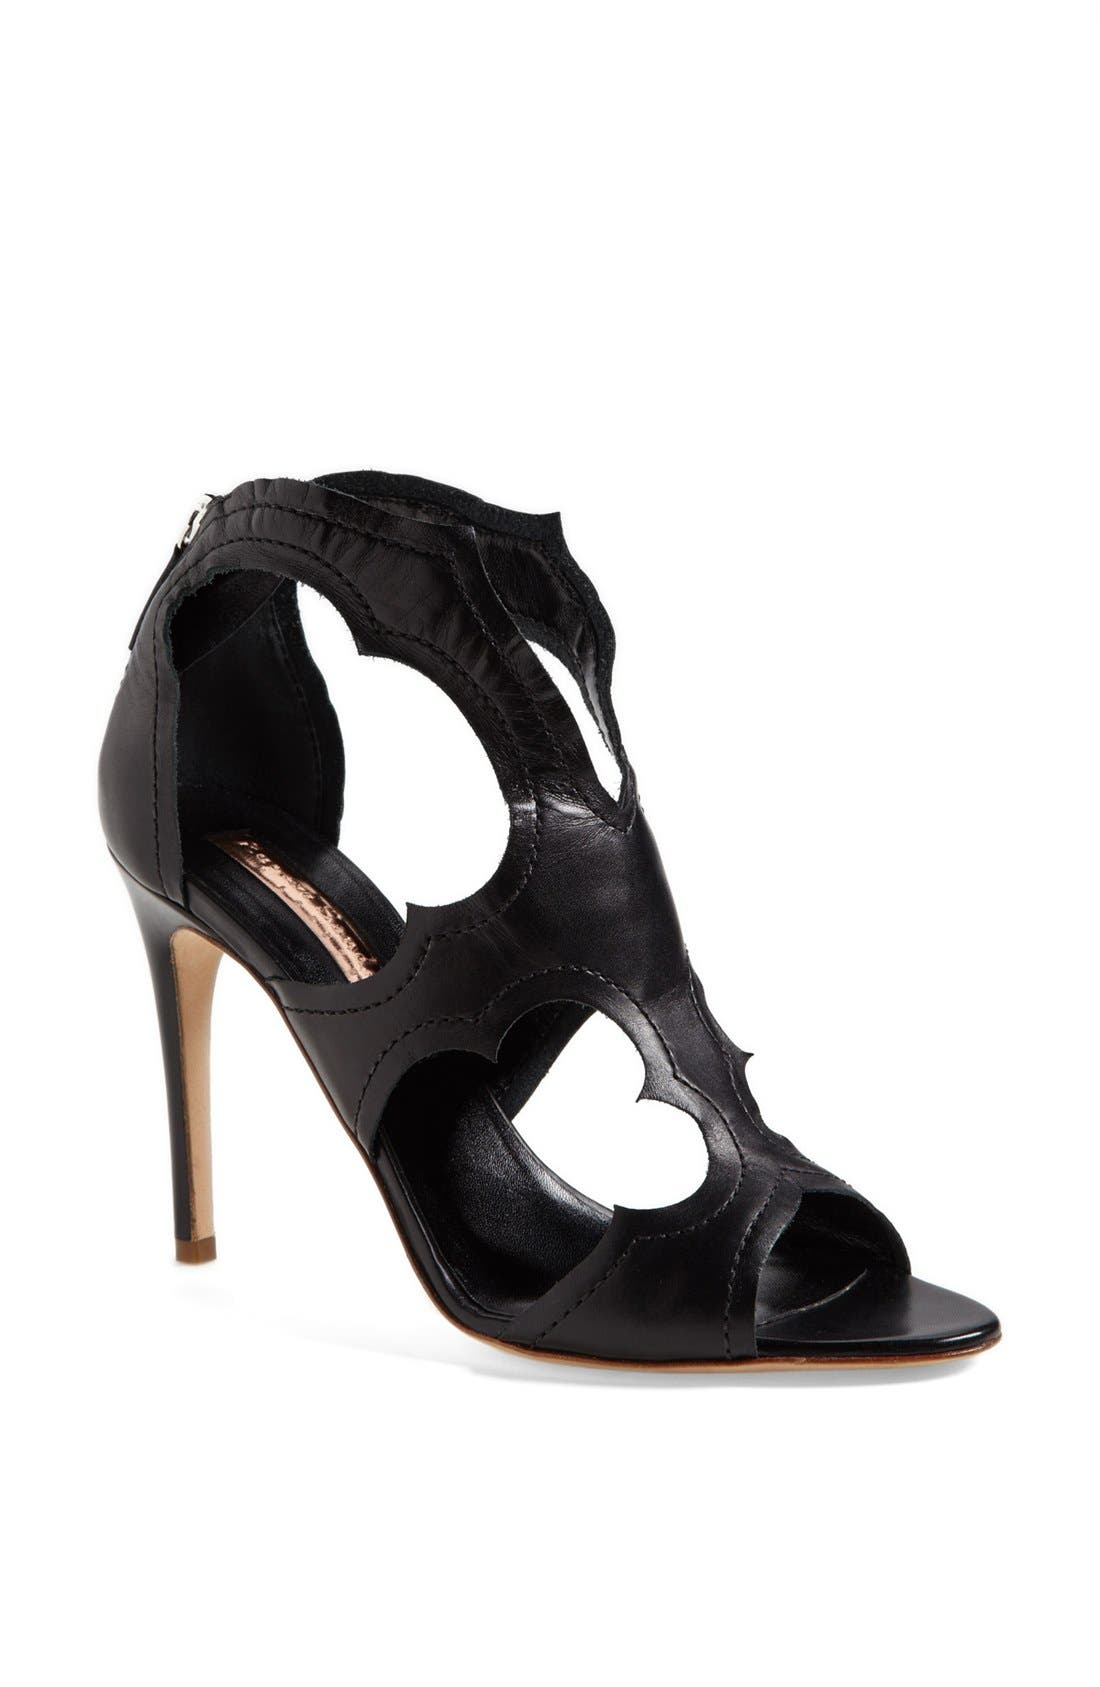 Alternate Image 1 Selected - Rupert Sanderson 'Estelle' Sandal